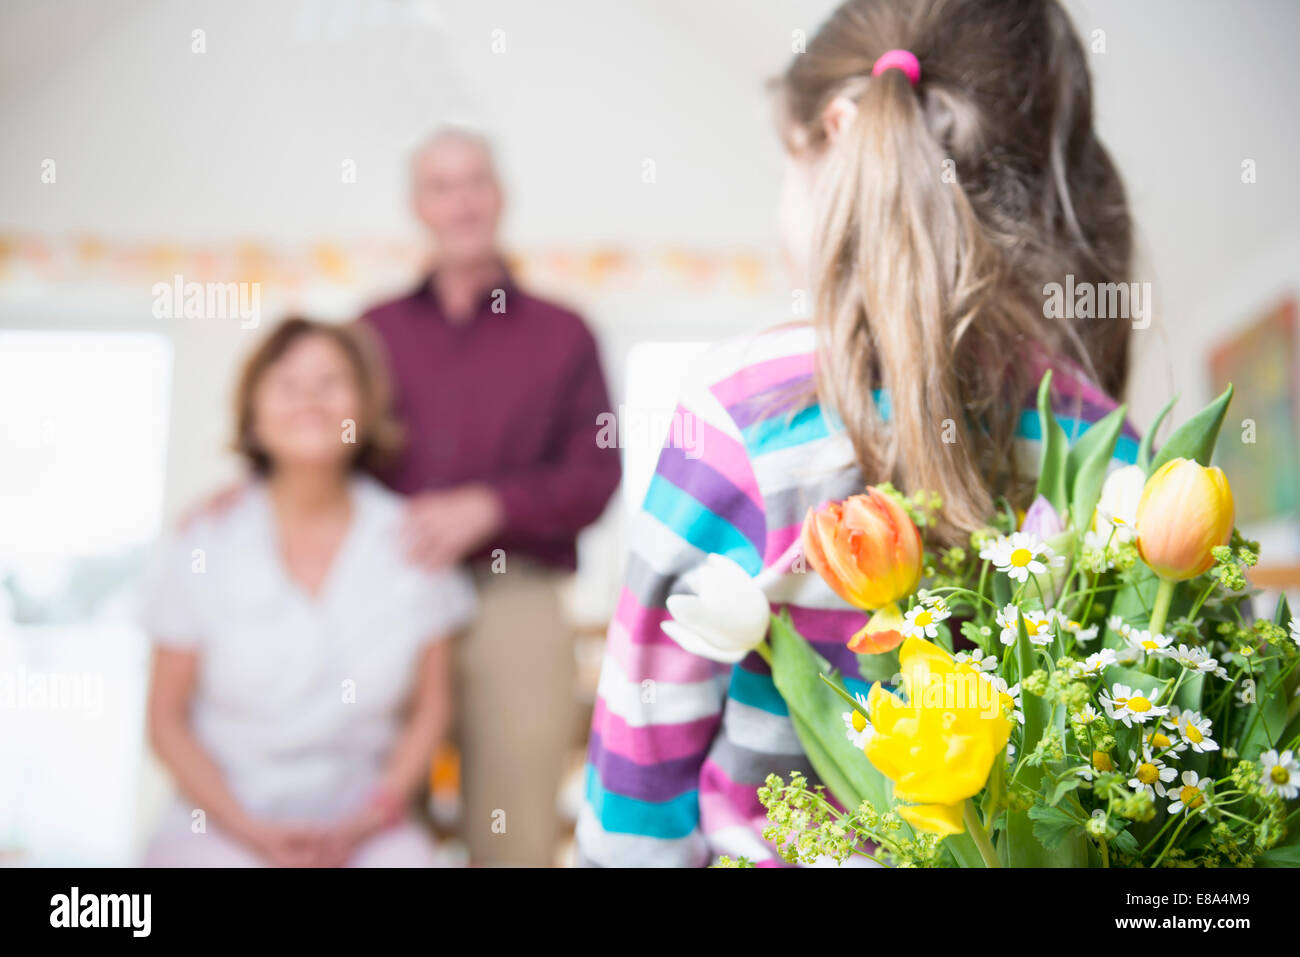 Granddaughter handover bouquet to her grandmother and grandfather in background Stock Photo